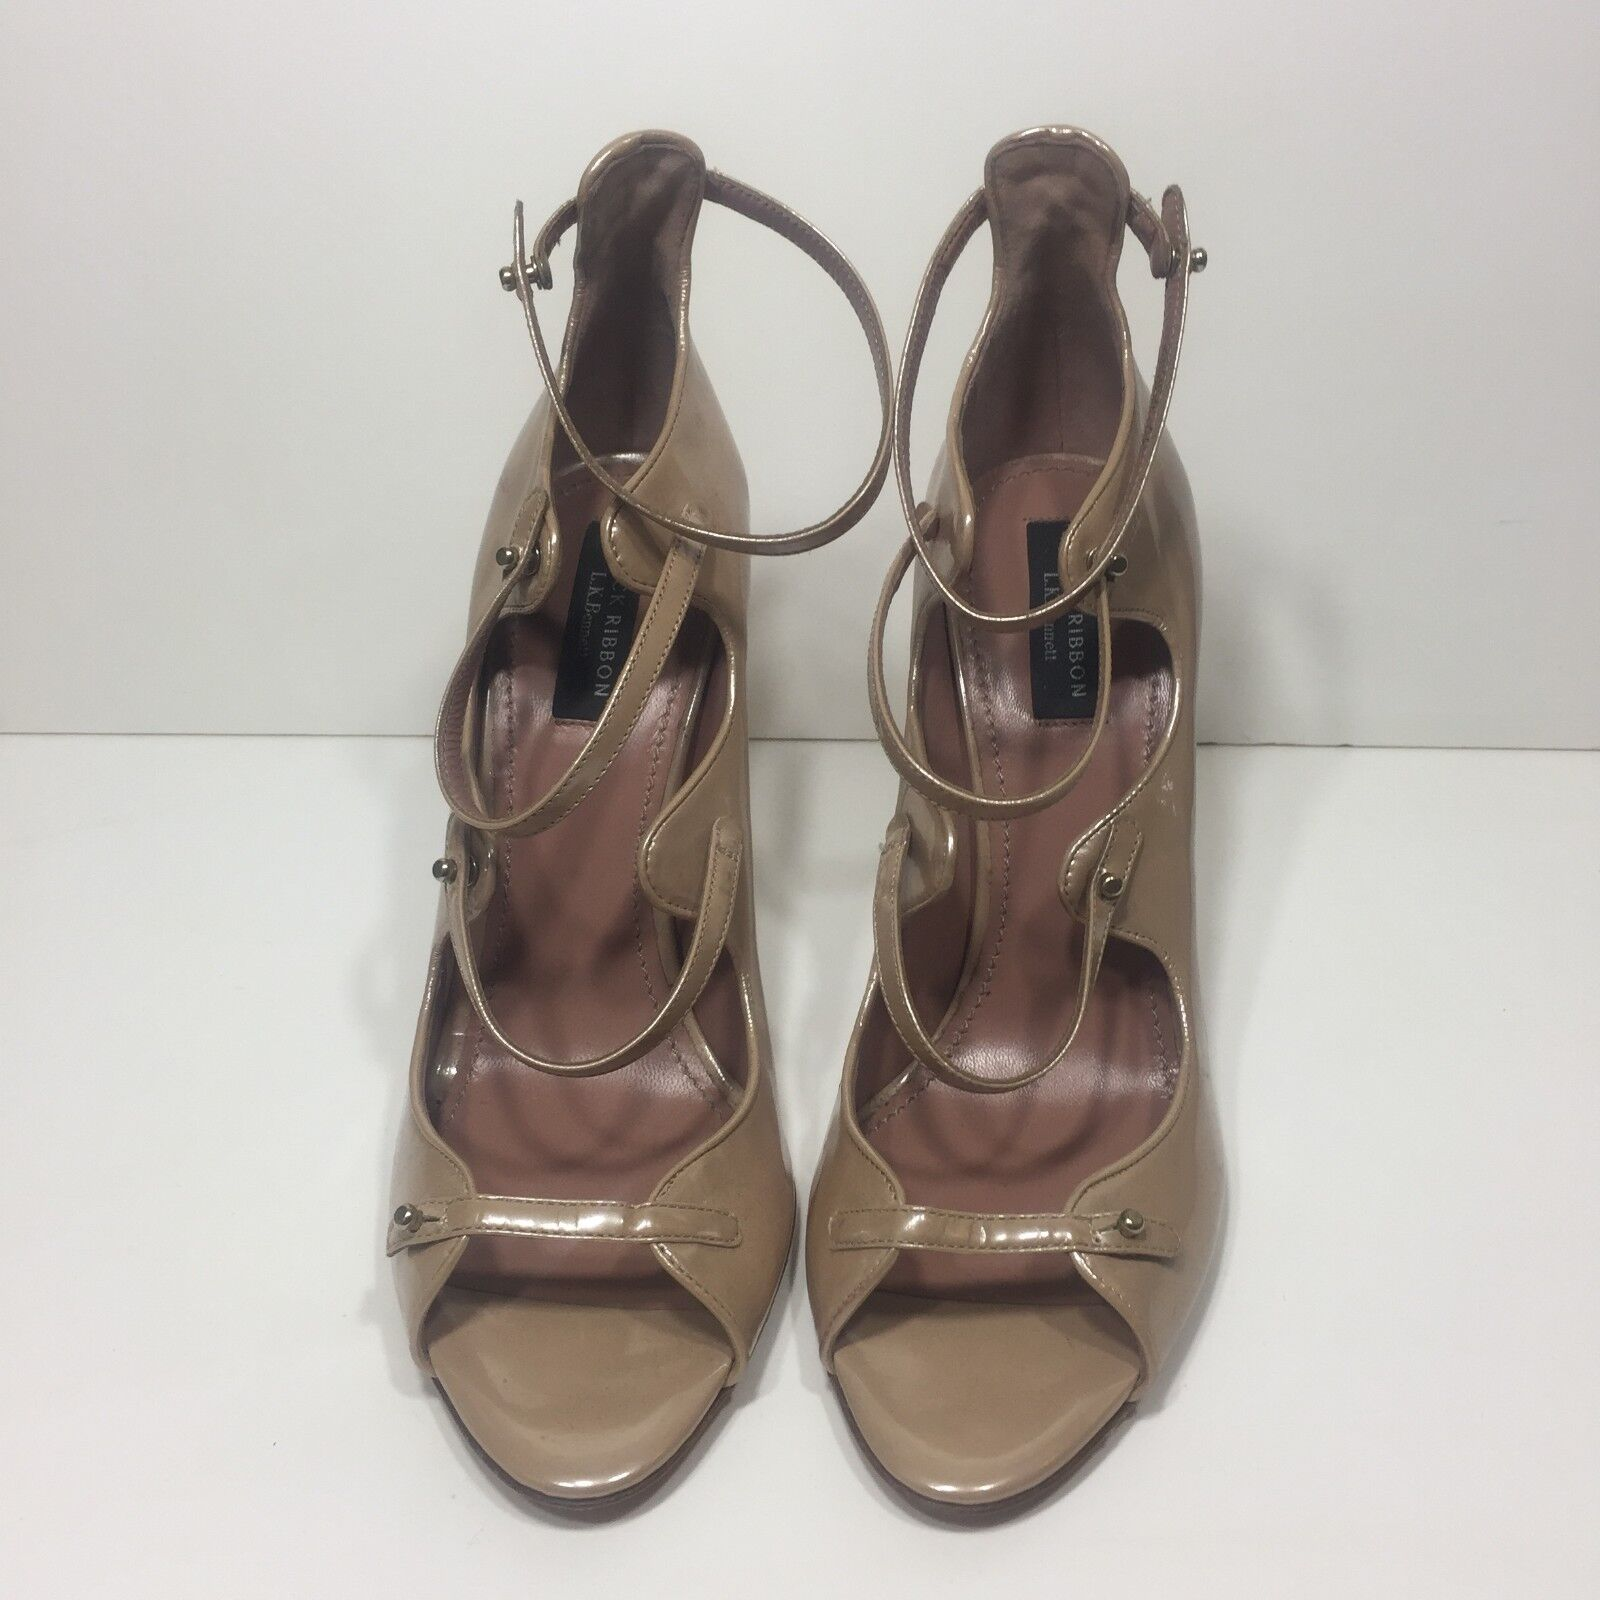 L.K. Bennett Patent Strappy Nude Heels Size 40 New without Box